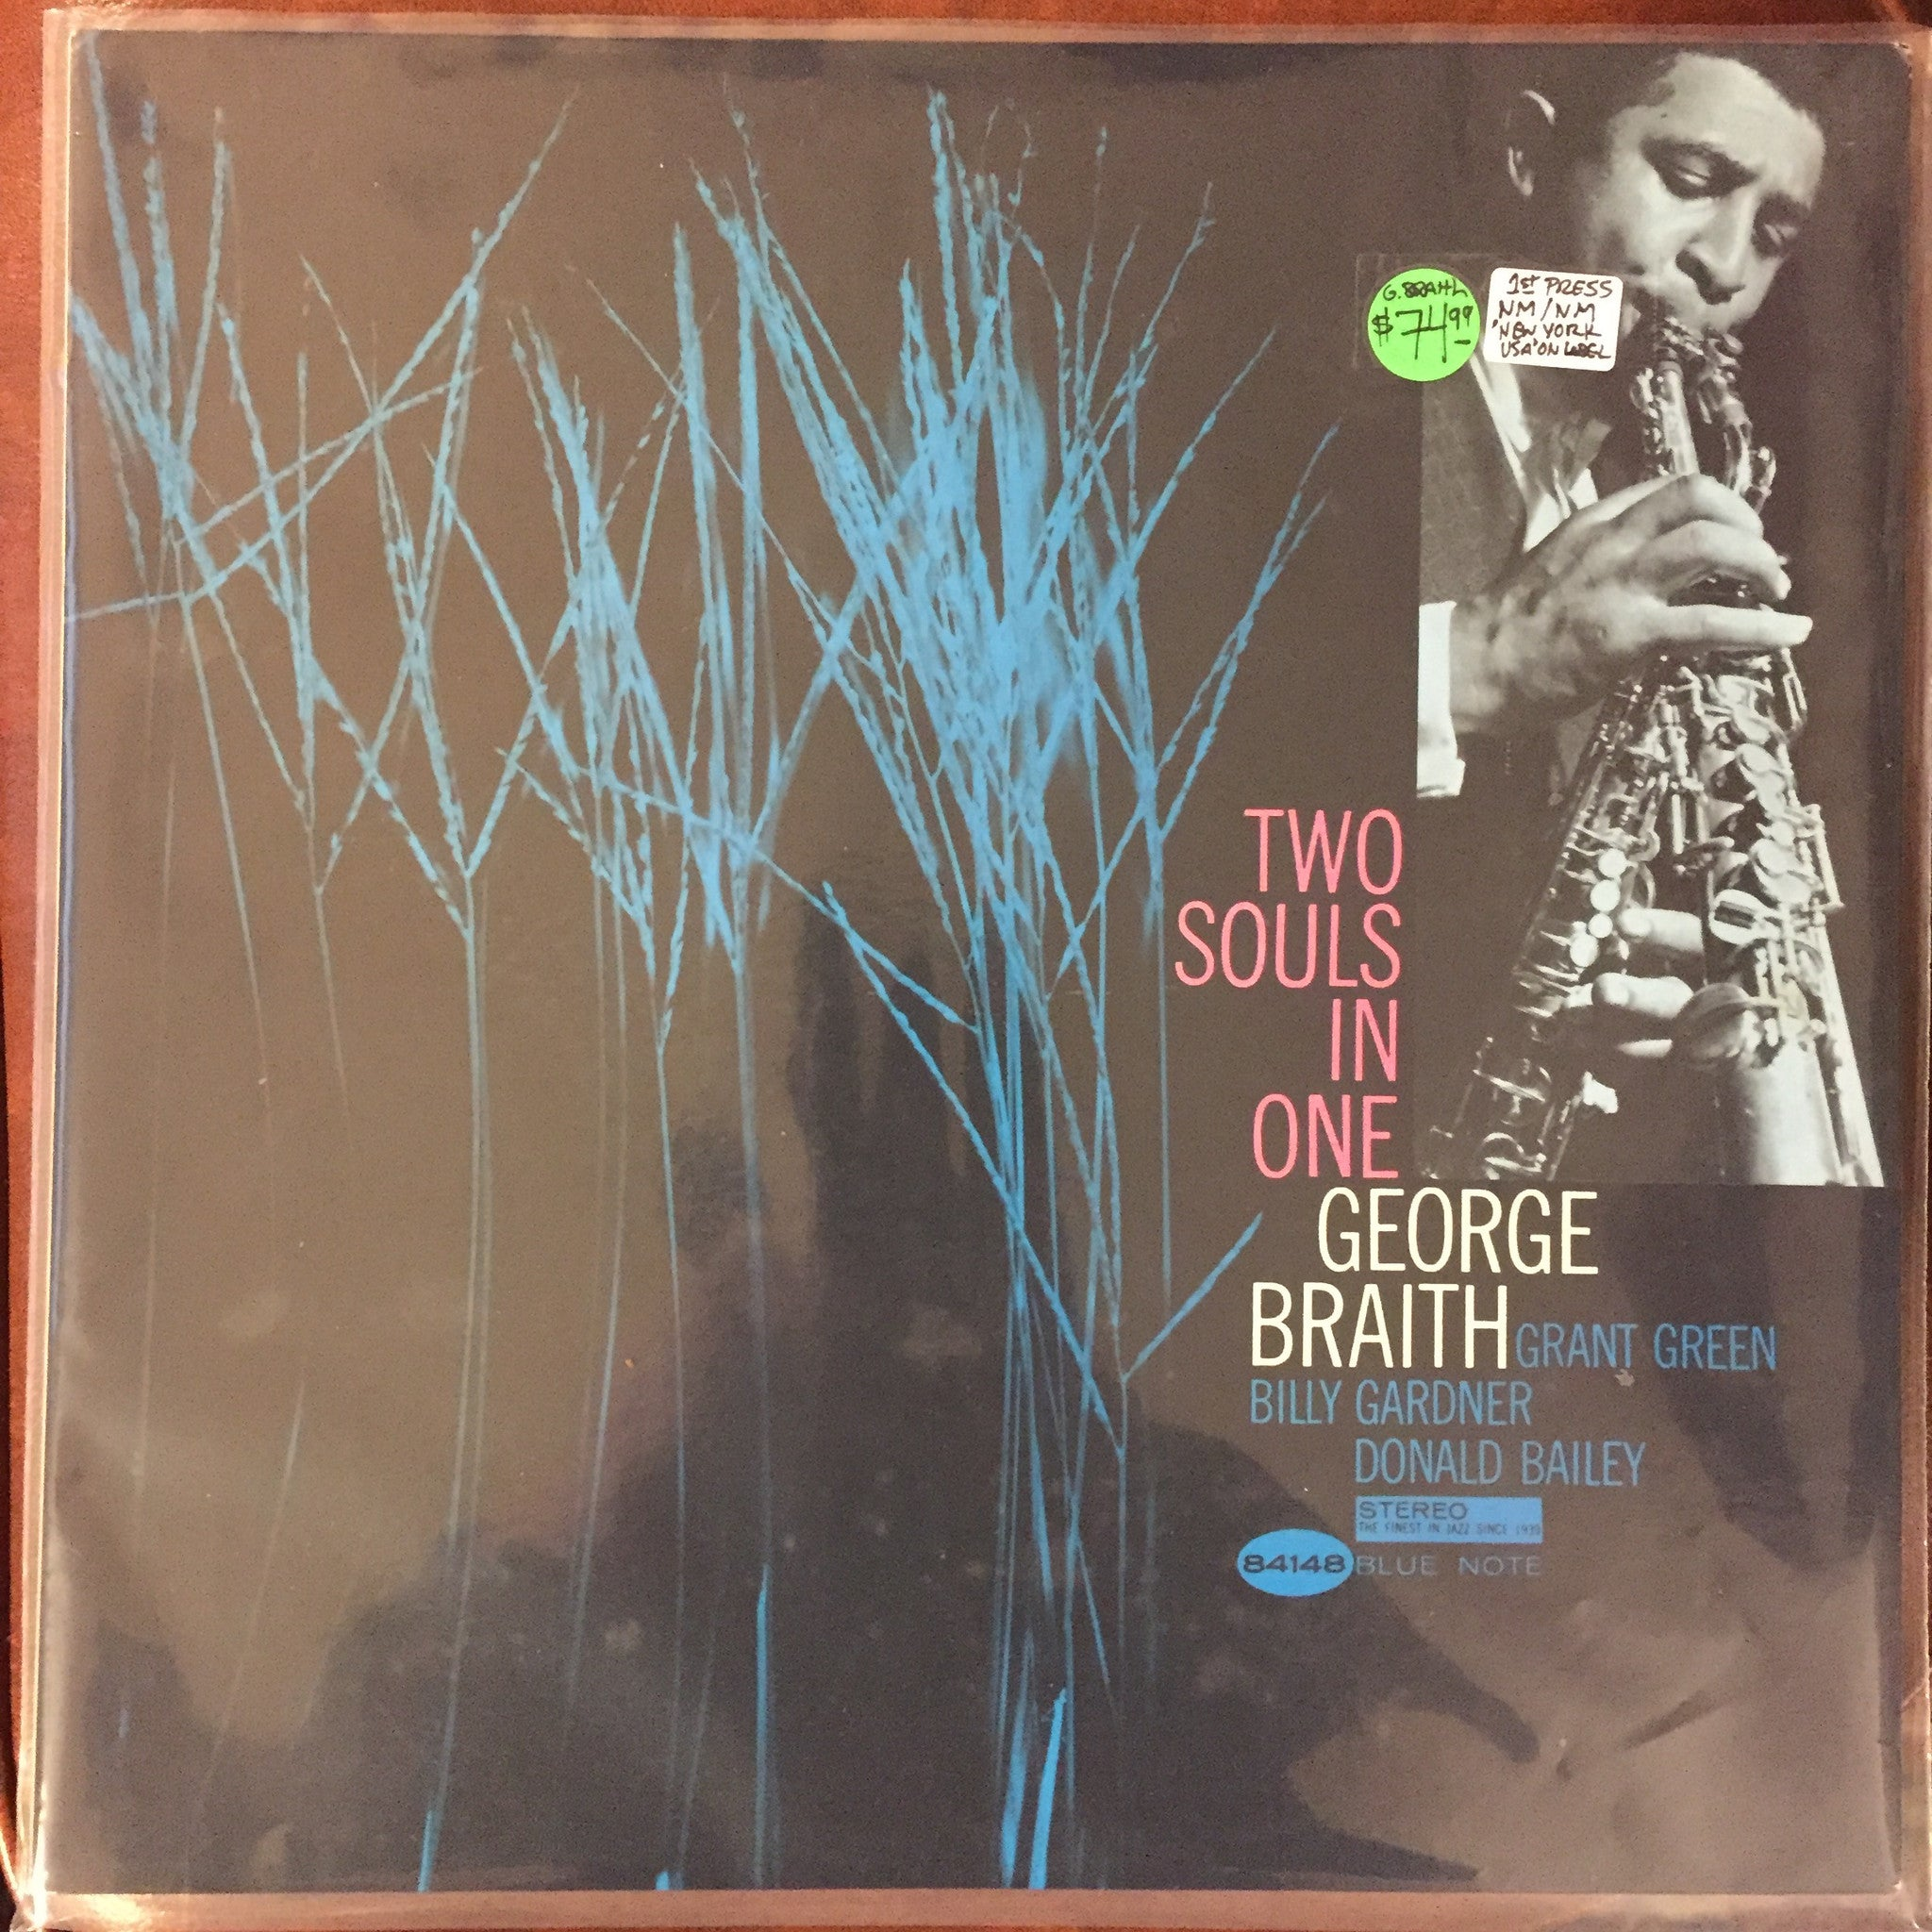 George Braith - Two Souls In One LP (Stereo 84148 Blue Note) - NM!